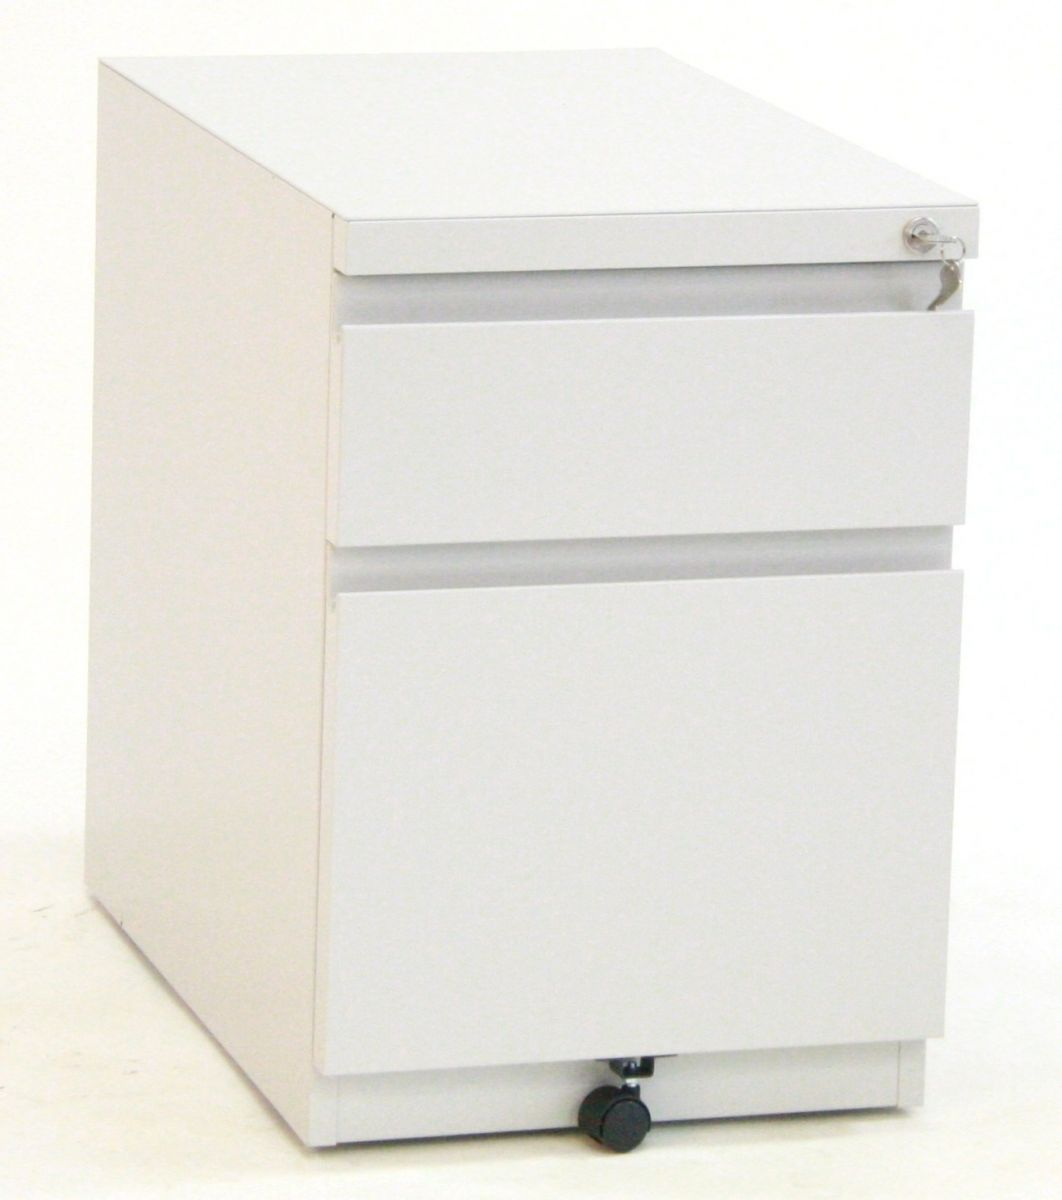 "NP1443 - New 23 1/2"" Mobile Pedestals with Tops"